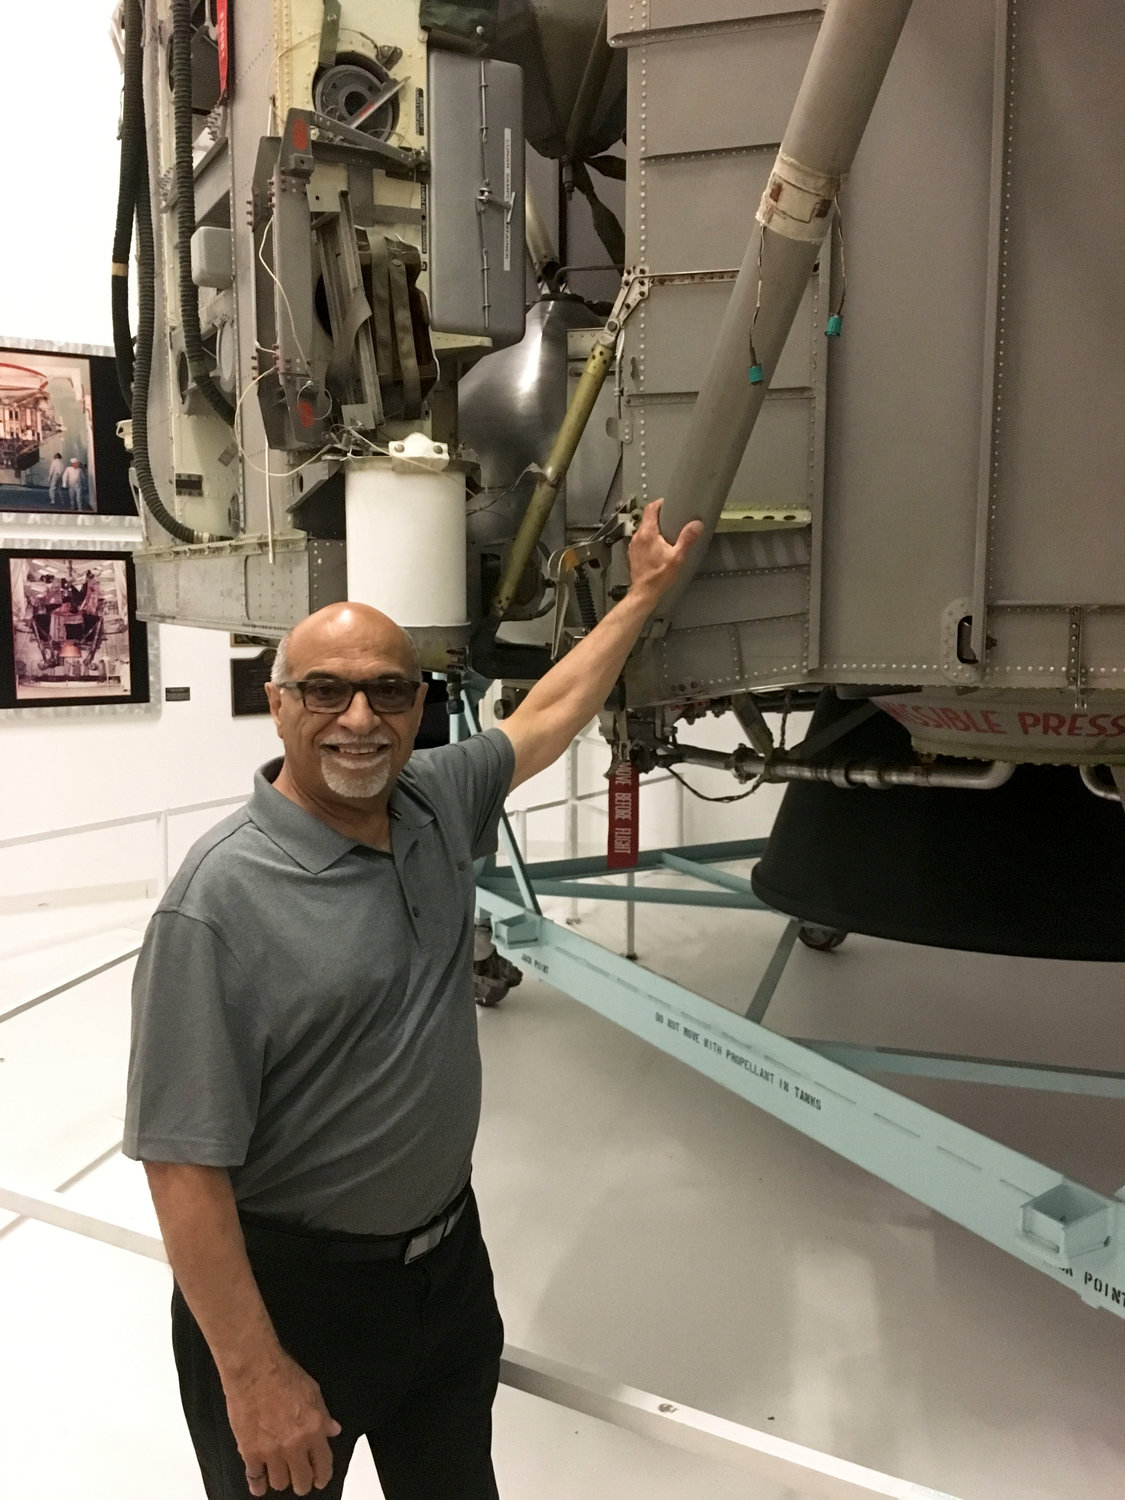 Mike Lisa, the Cradle of Aviation Museum's manager of volunteer services, worked at Northrop Grumman in 1969, when the company created the LM.